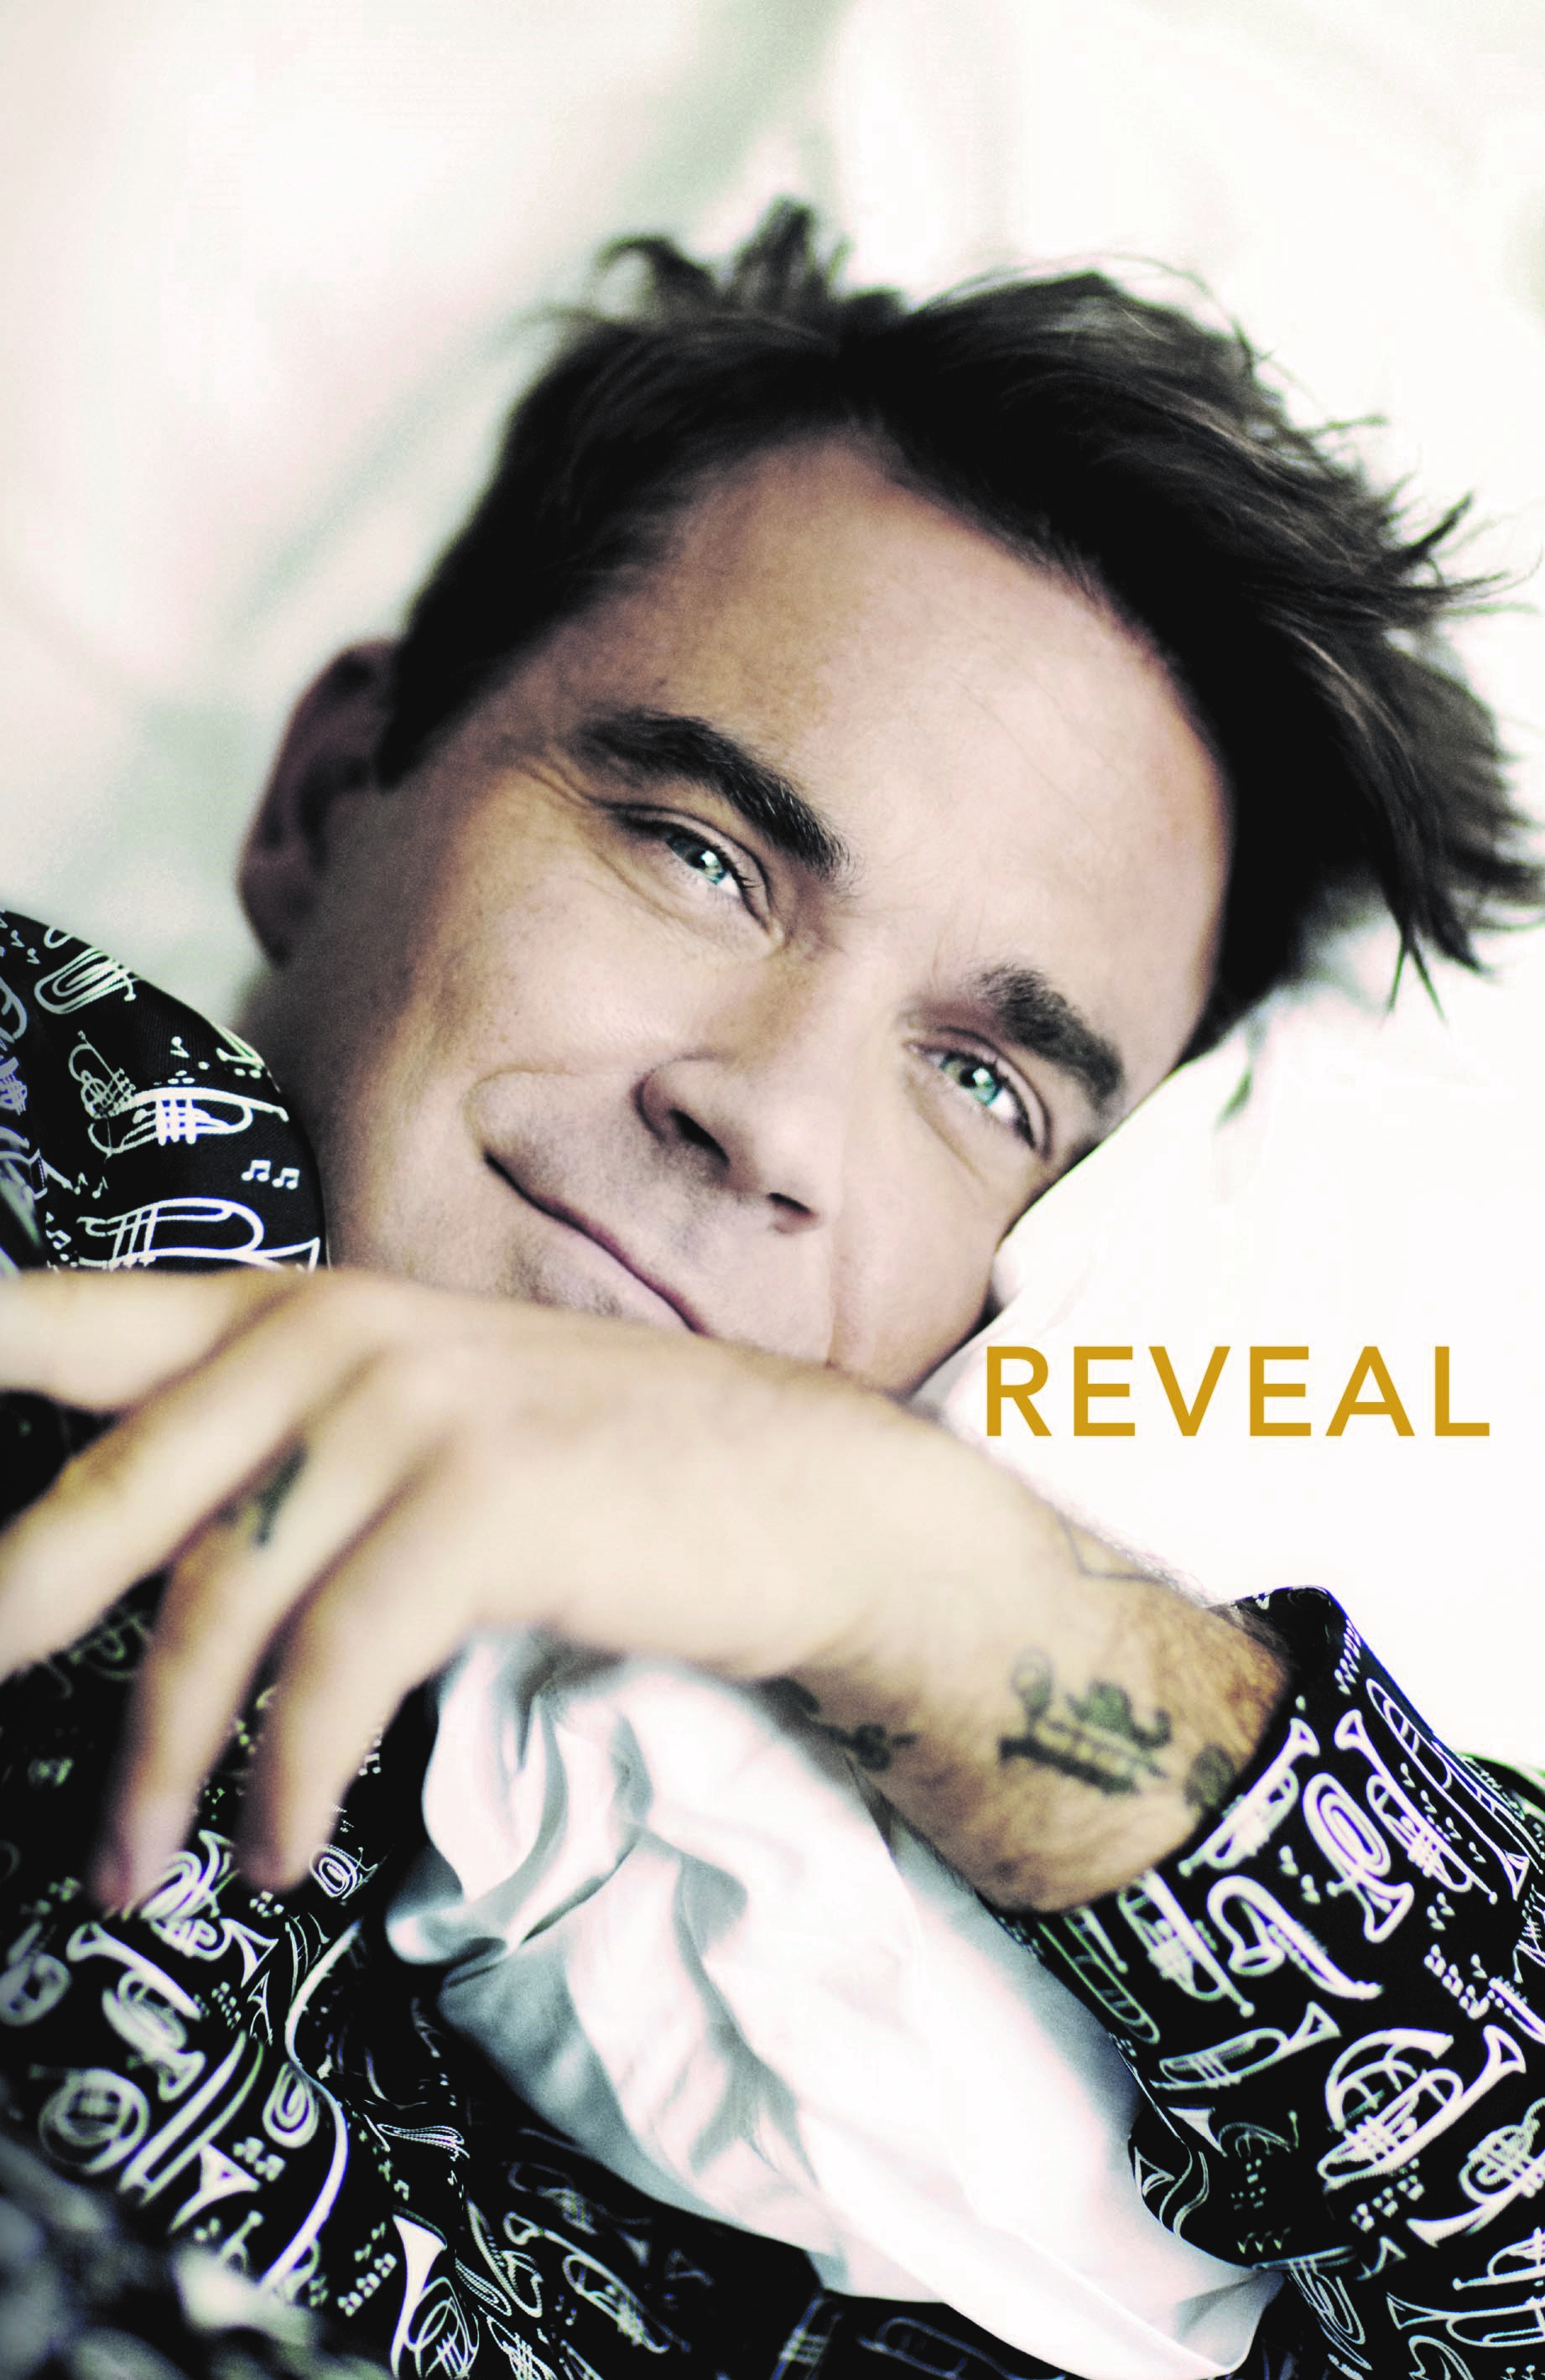 Robbie Williams' biography